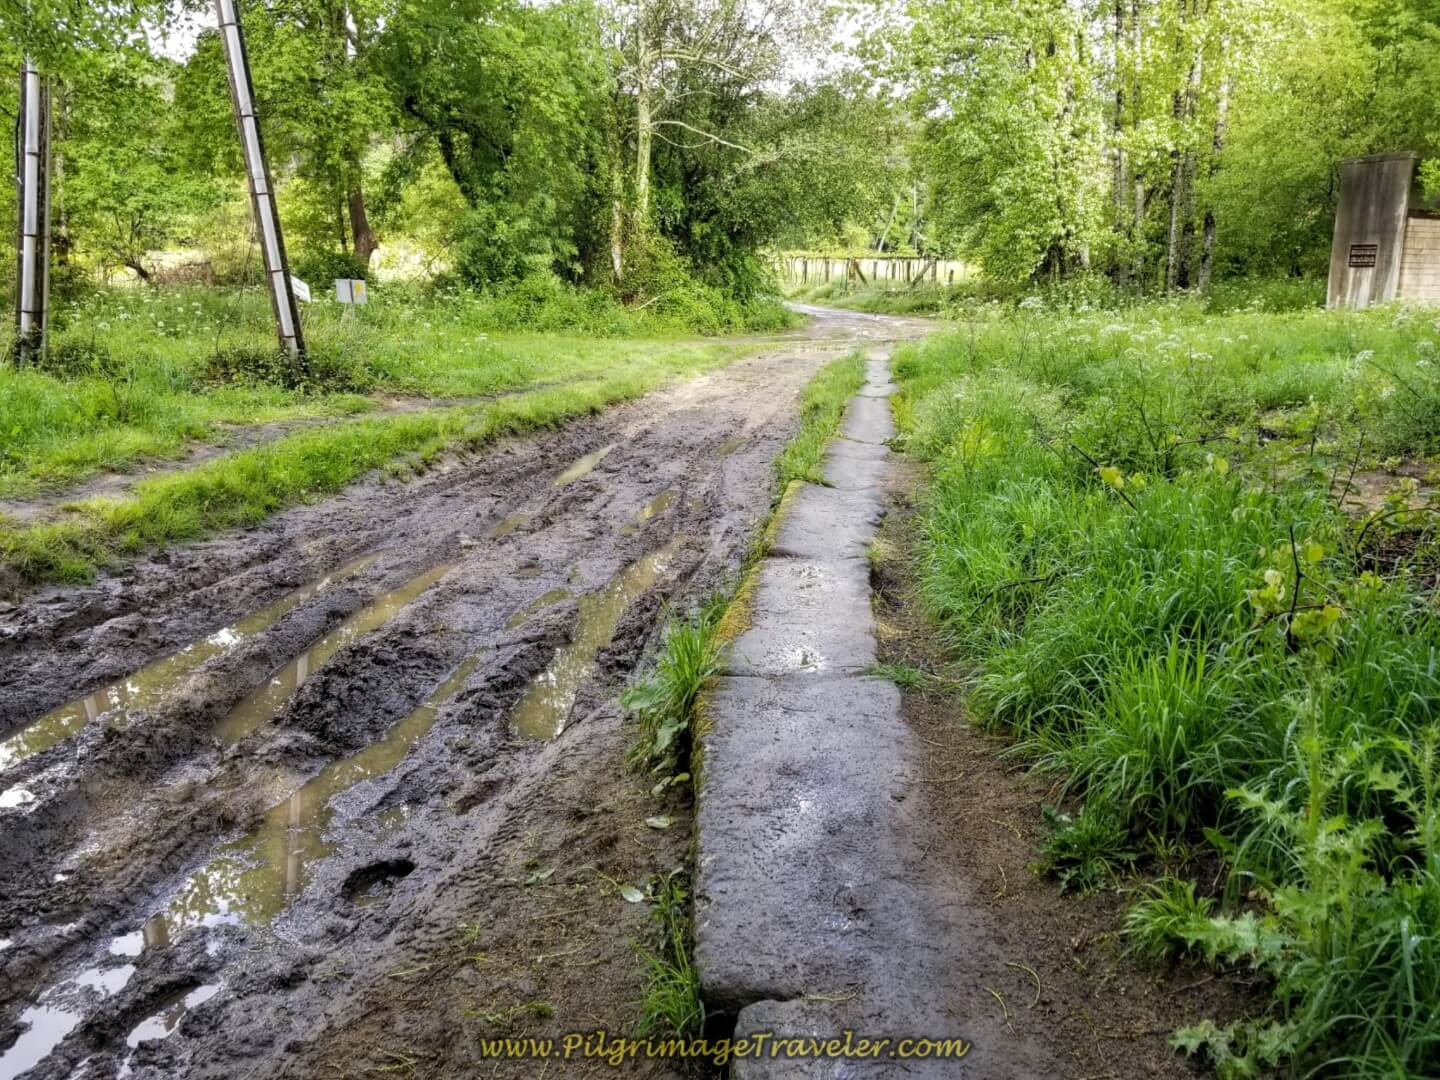 Stone Path Beside Muddy Ruts in the Road on day twenty on the central route of the Portuguese Camino